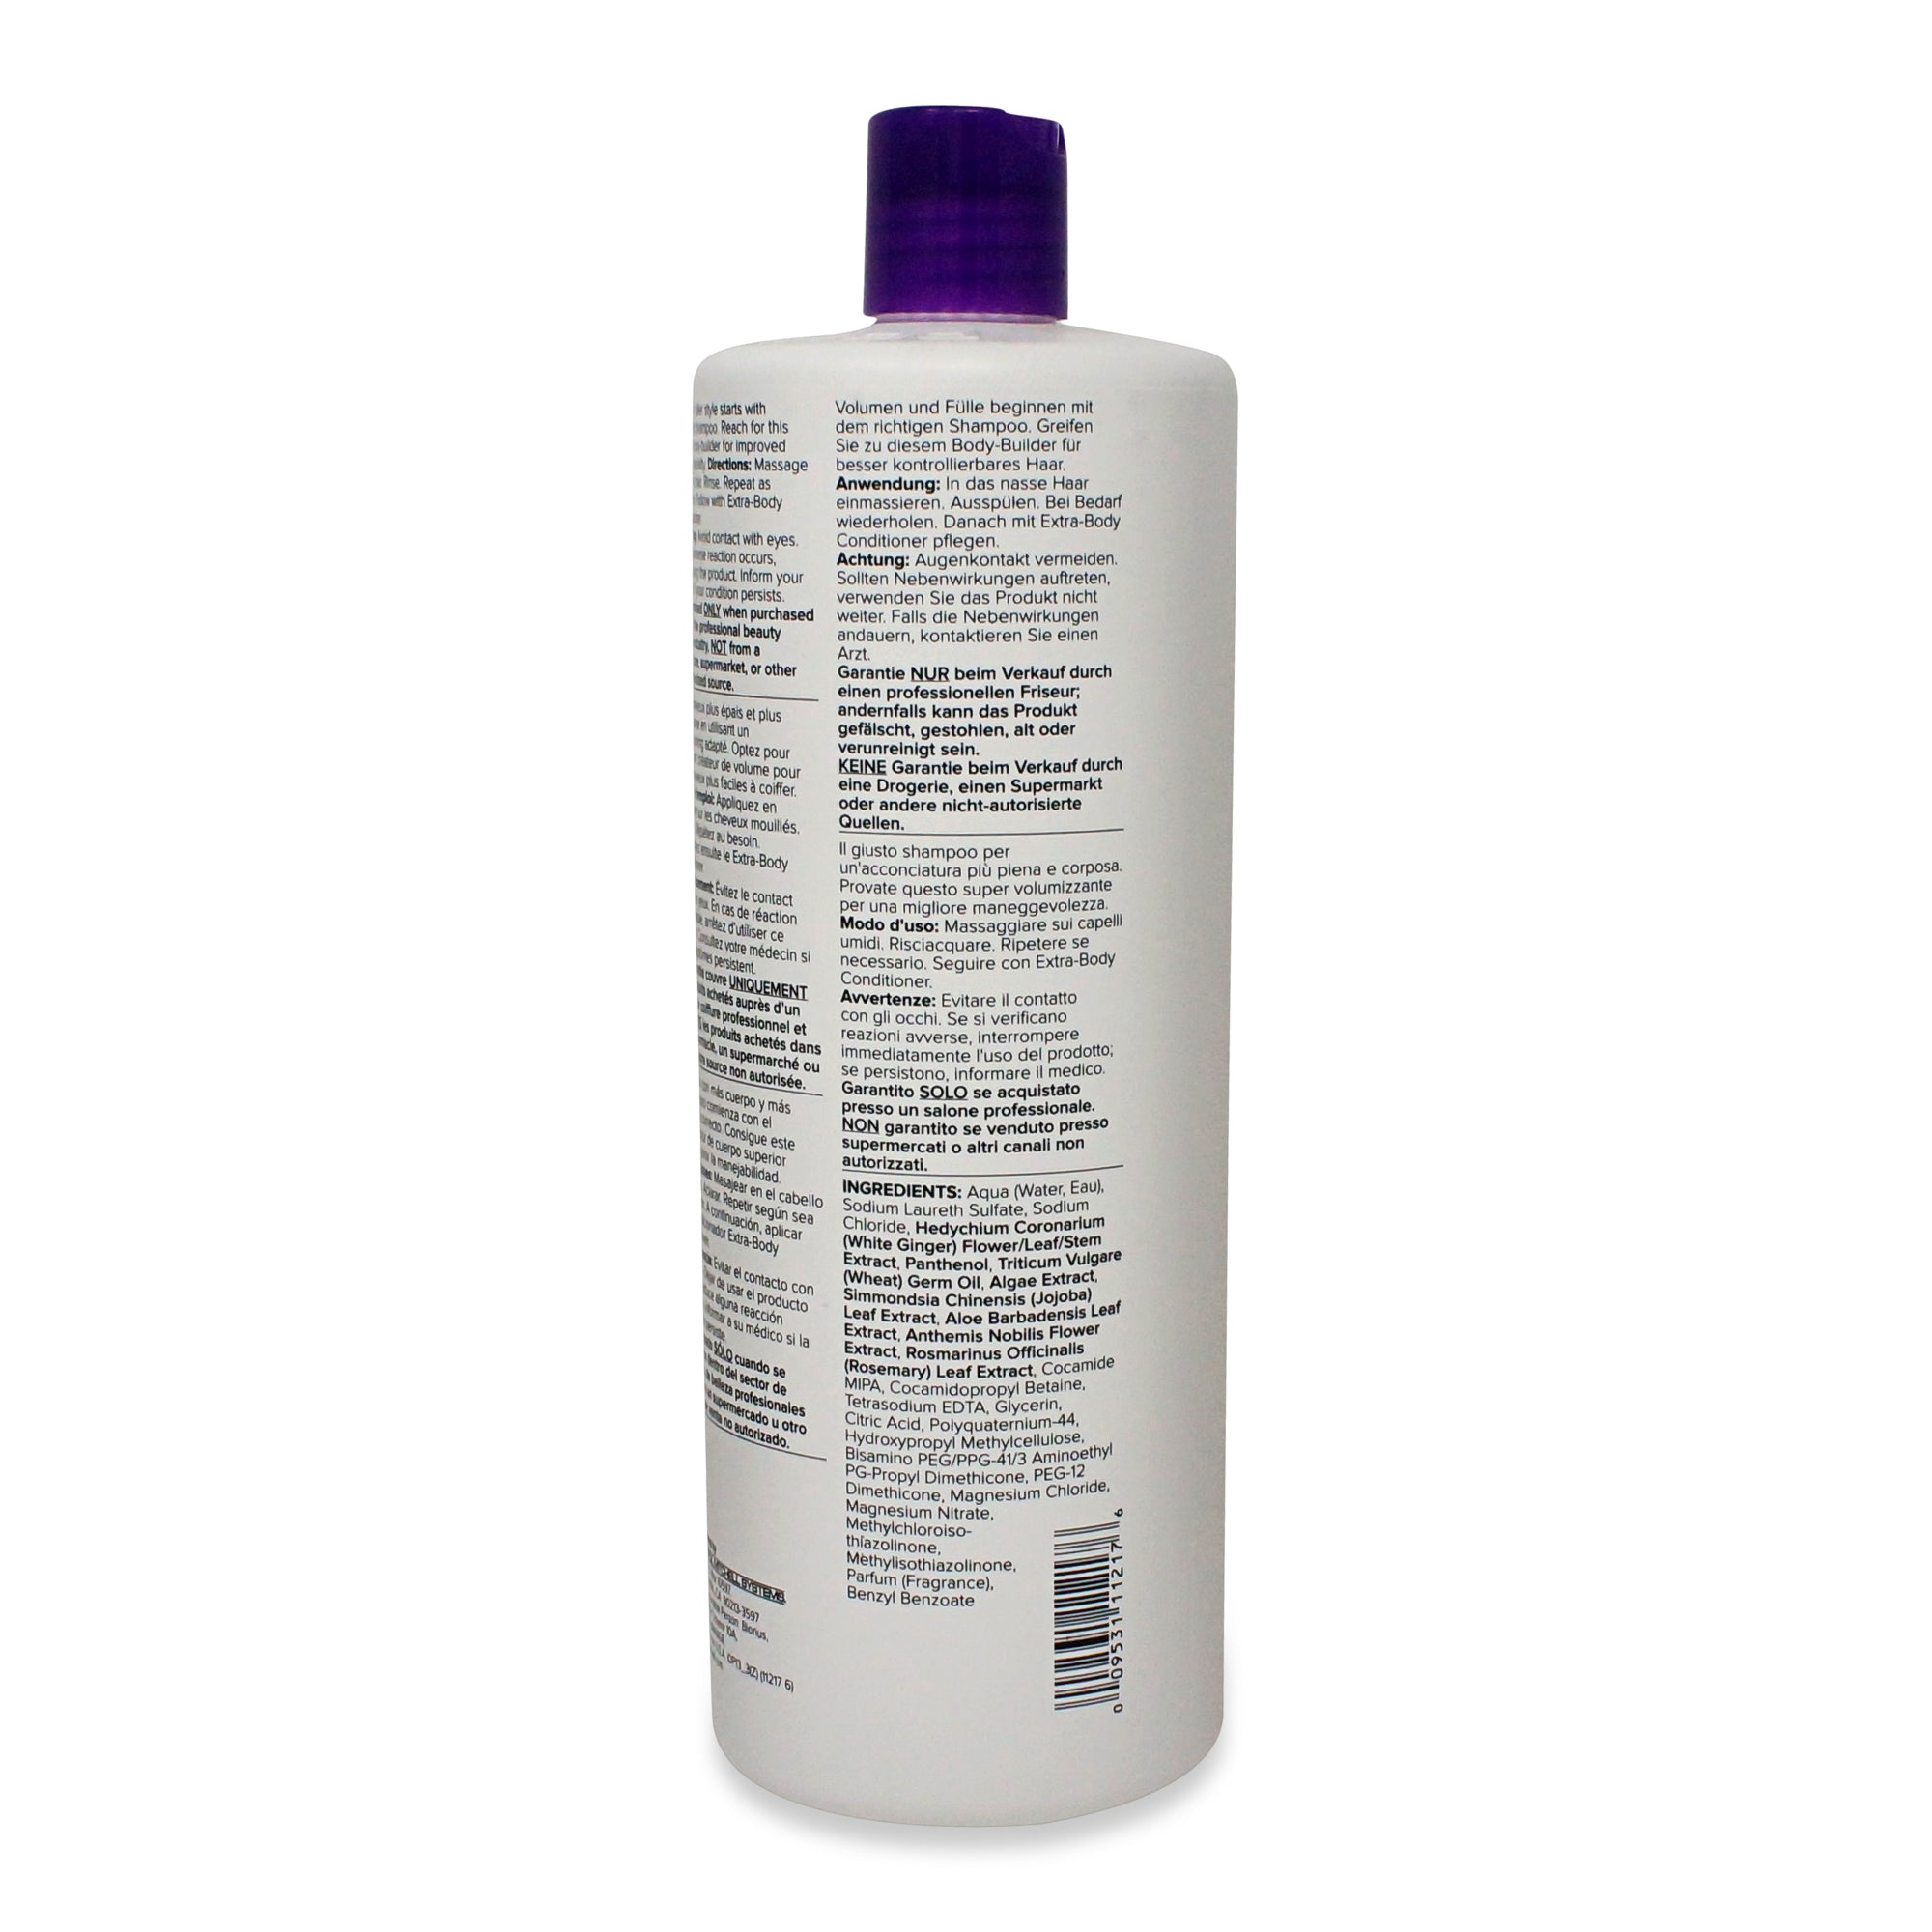 Paul Mitchell ExtraBody Daily Shampoo 33.8 oz.